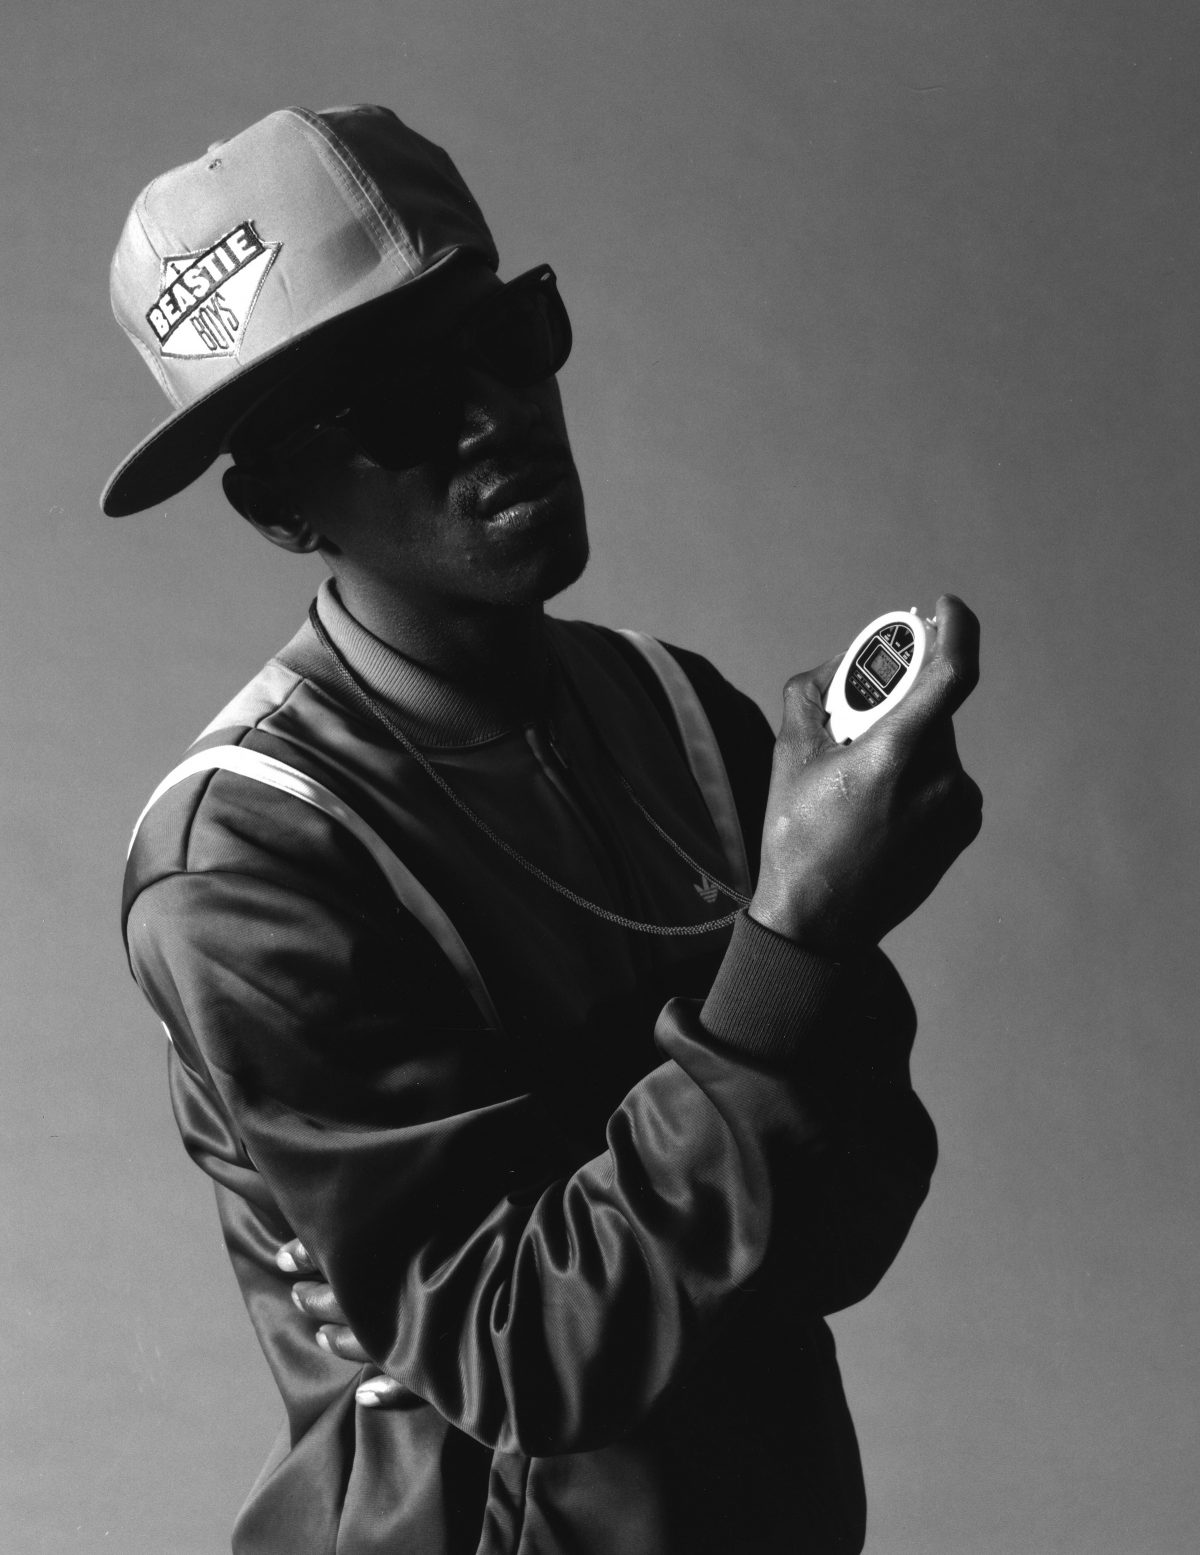 Flava Flav Public Enemy NYC 1987 - by Janette Beckman